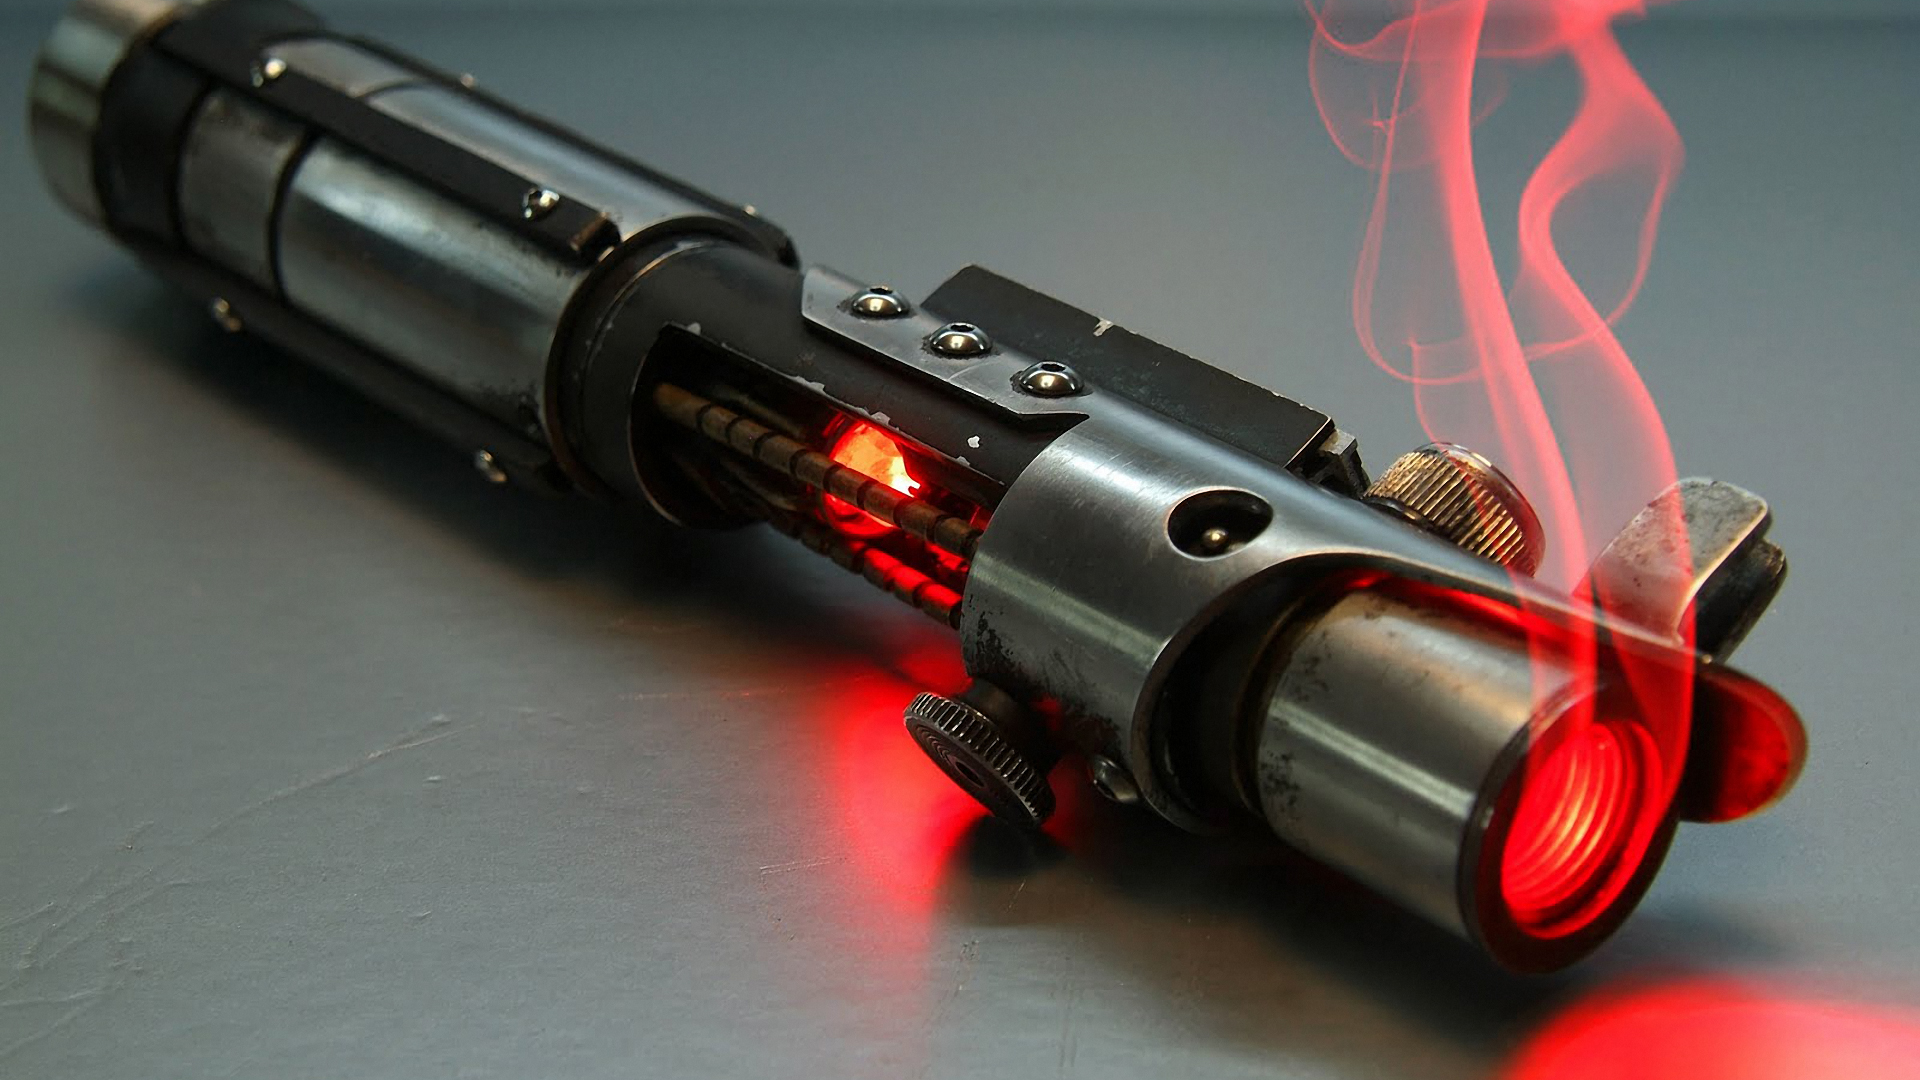 Star Wars Lightsaber Wallpaper 1920x1080